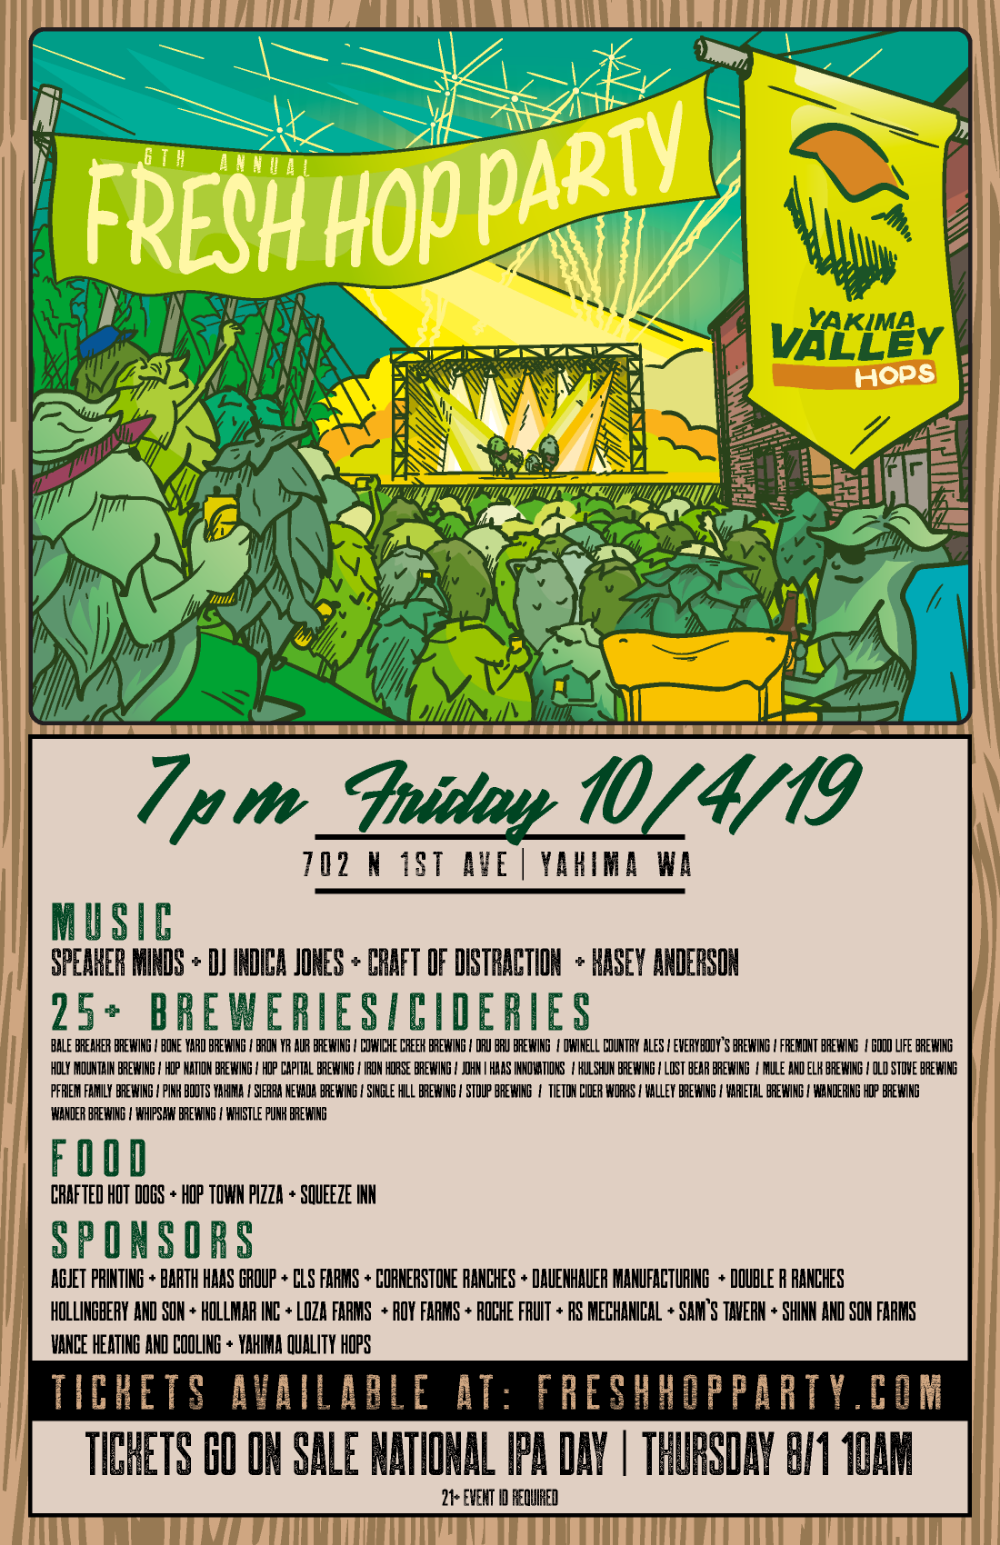 Yakima Valley Hops Presents The Fresh Hop Party Gongago Tri